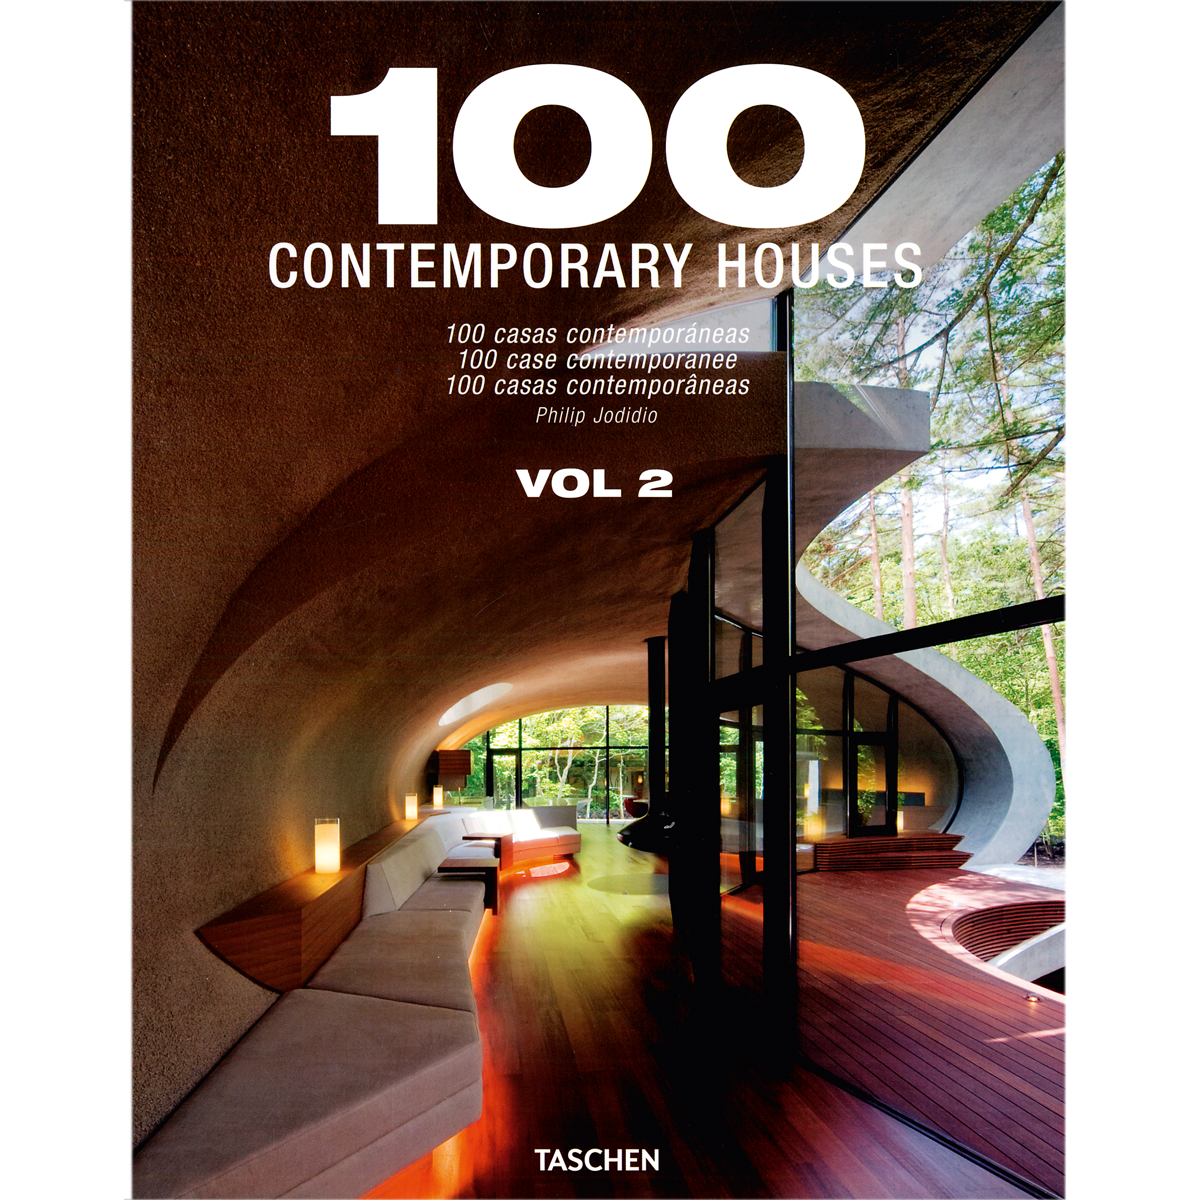 100 casas contemporáneas